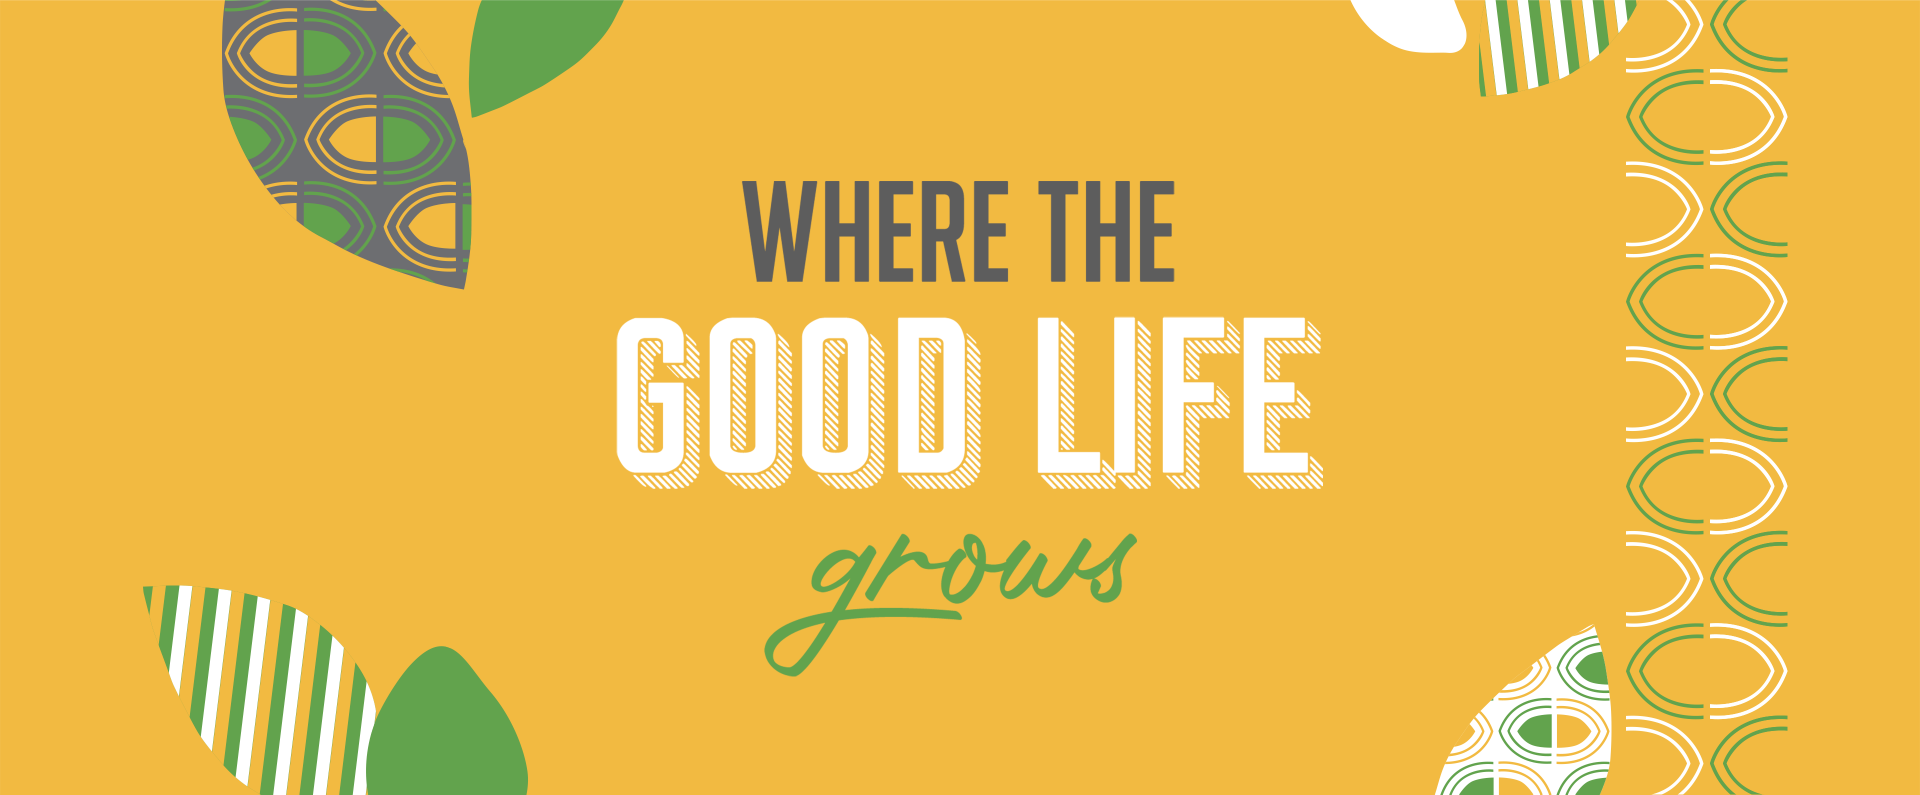 Where the good life grows